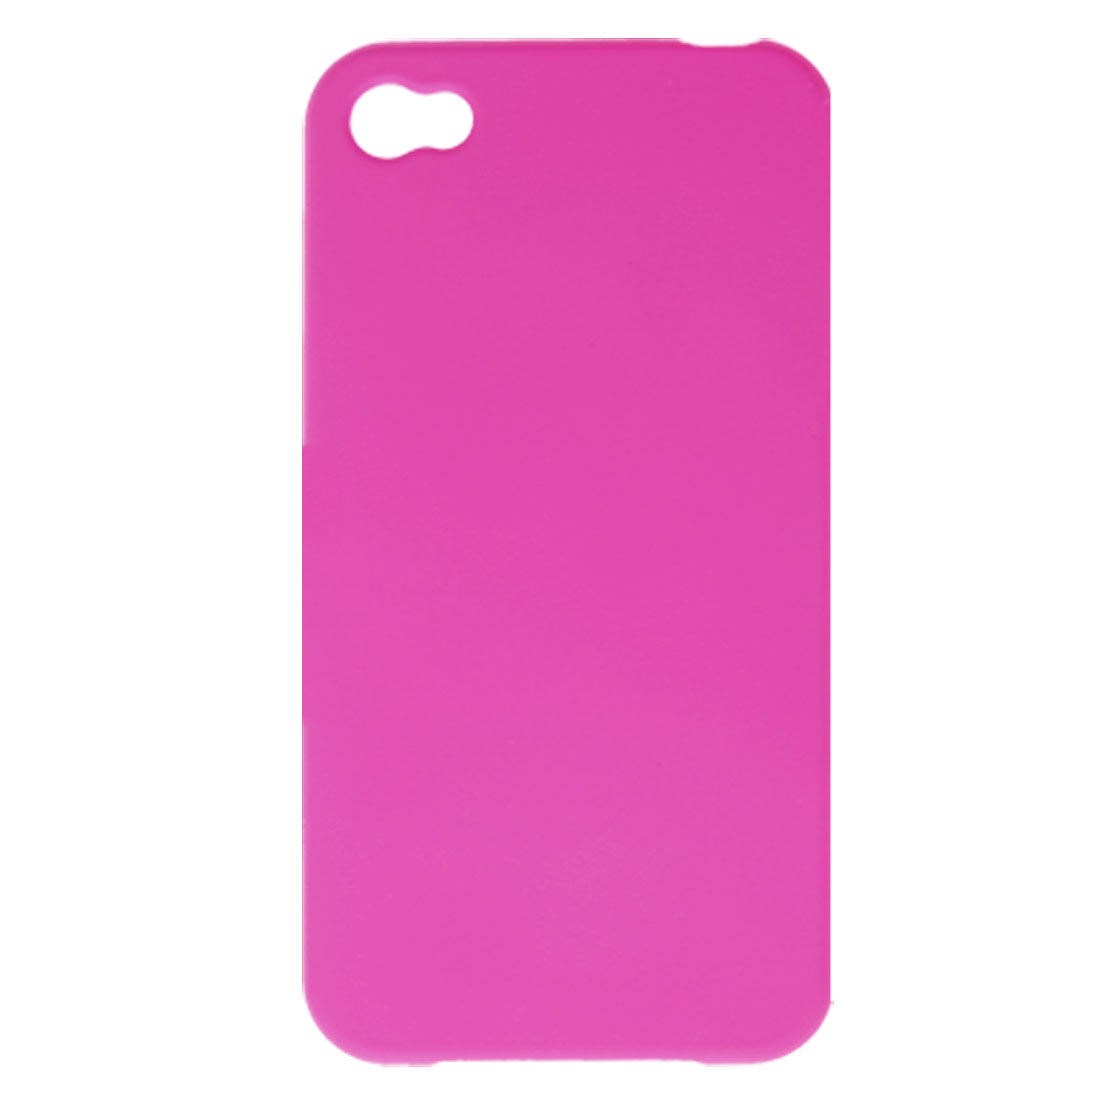 Amaranth Pink Rubberized Hard Plastic Case for iPhone 4 4G